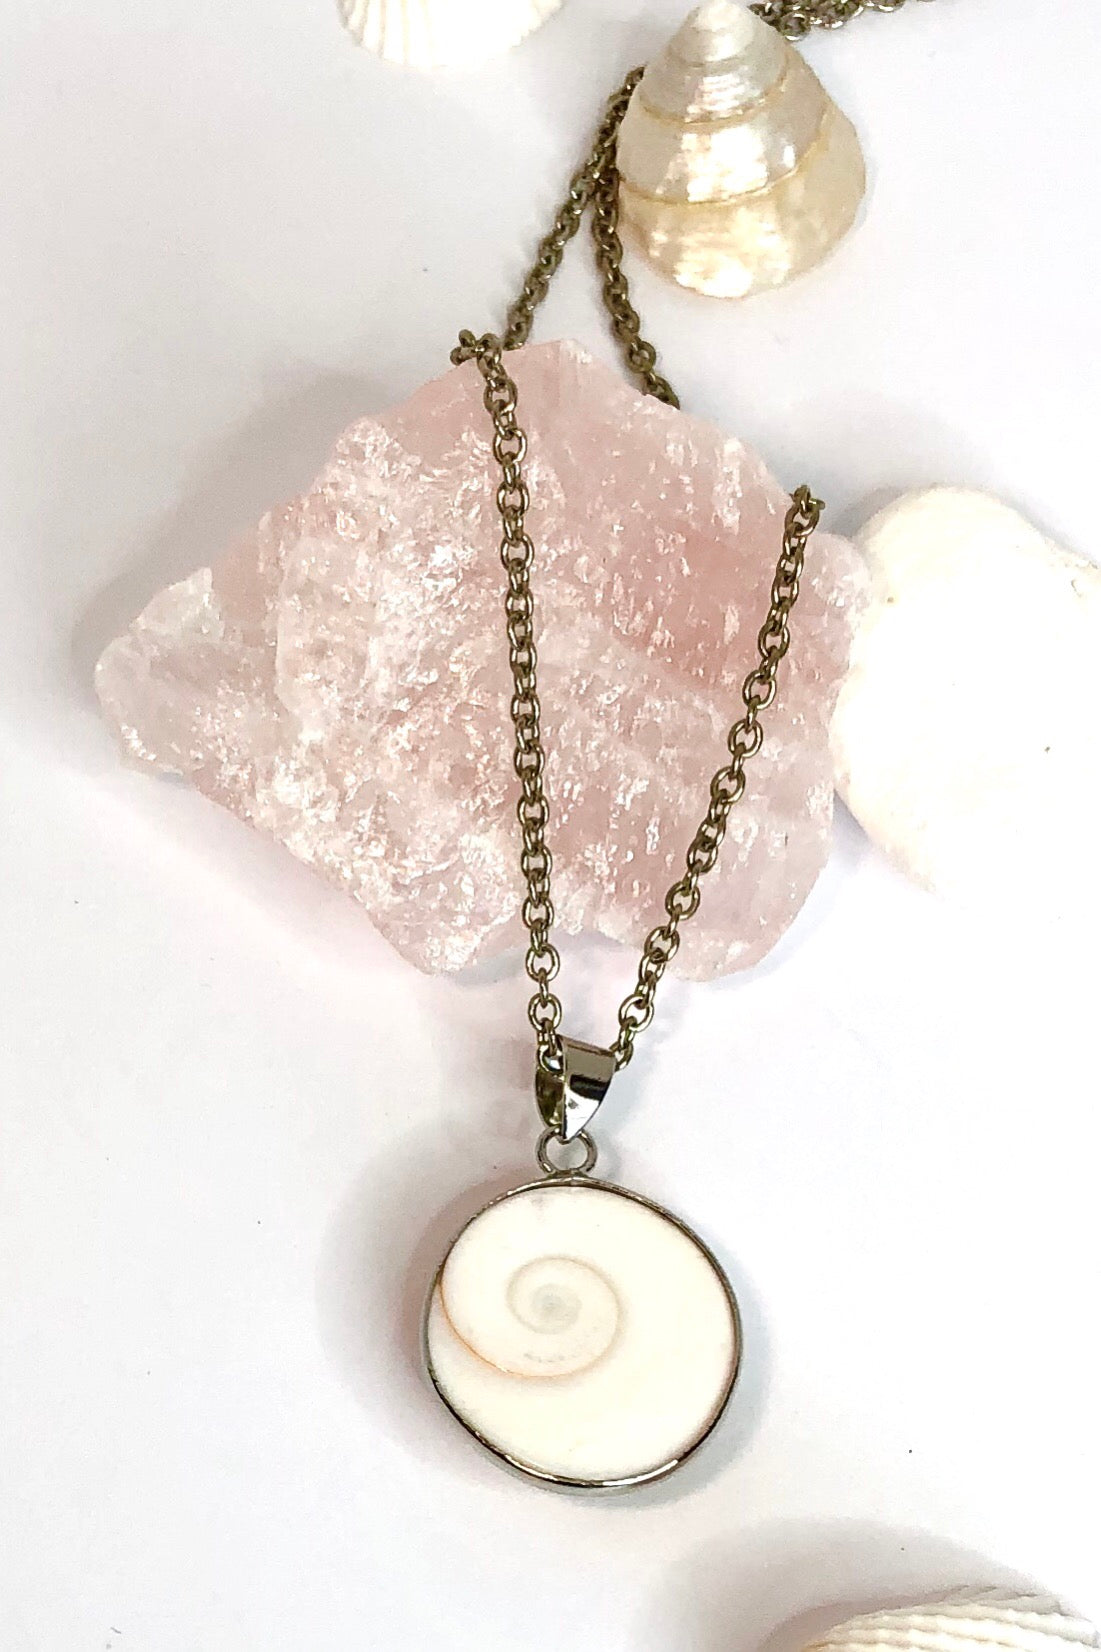 This pendant is known as Shiva Shell, and sometimes called Pacific Cat's Eye.